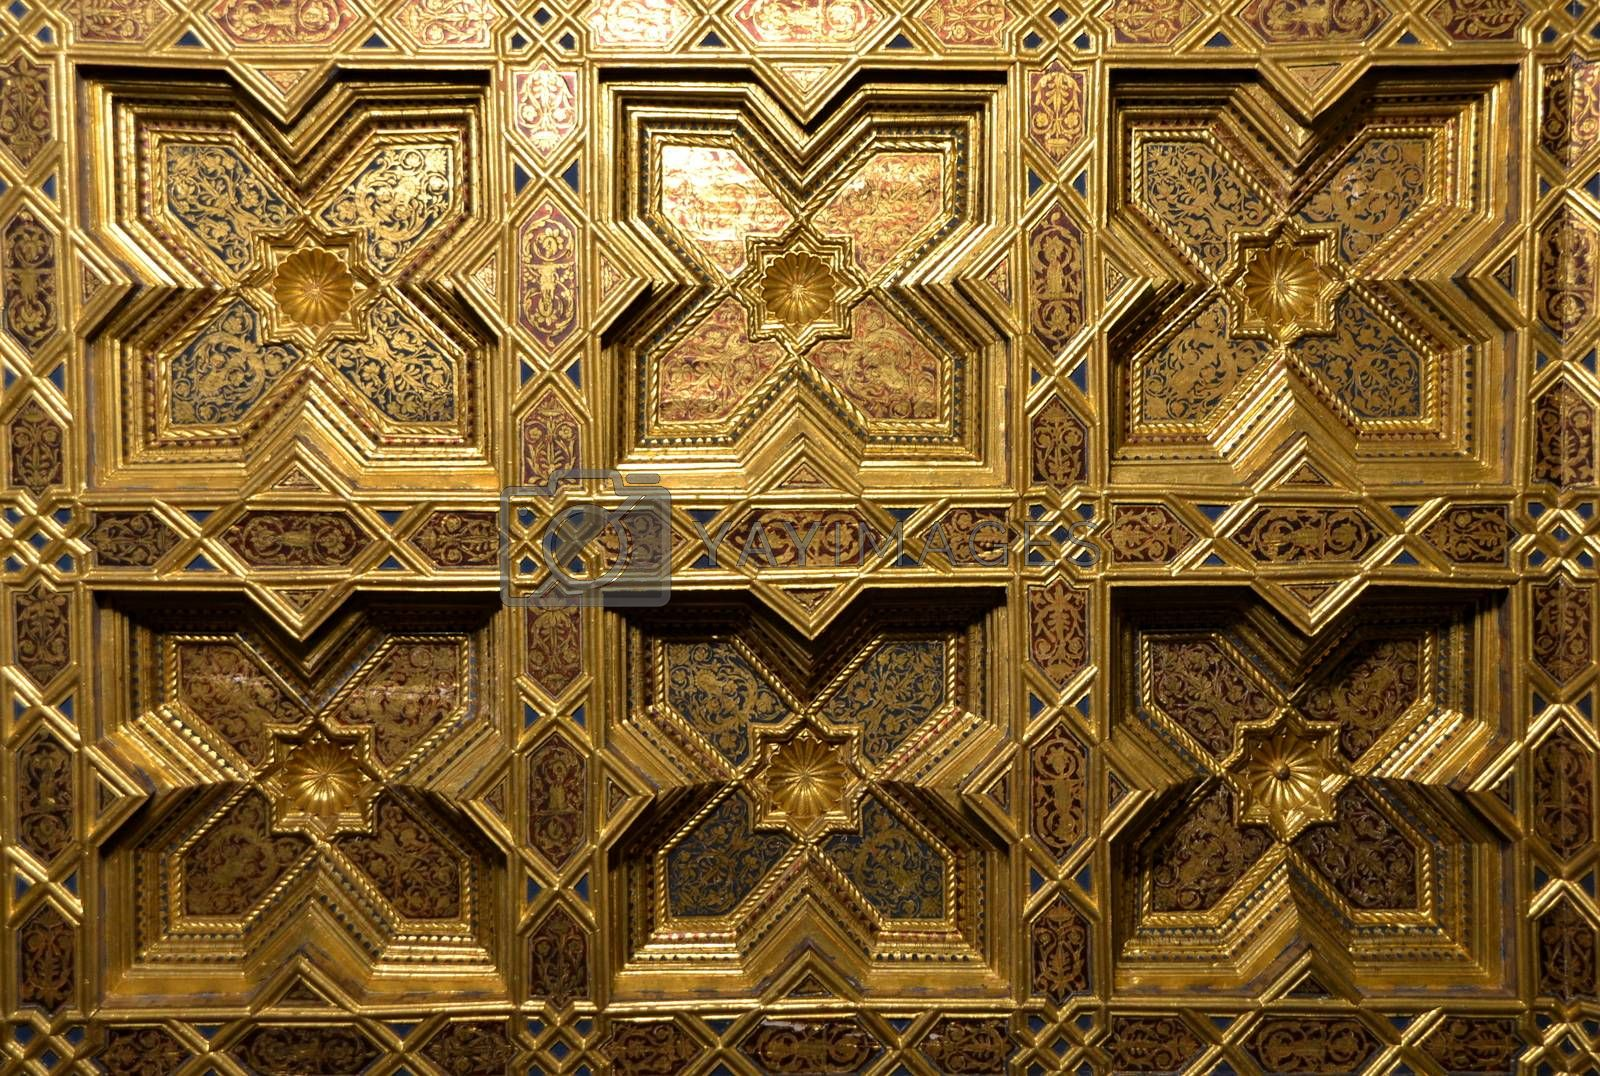 Golden background with traditional Arabes ornaments made with coffered ceiling